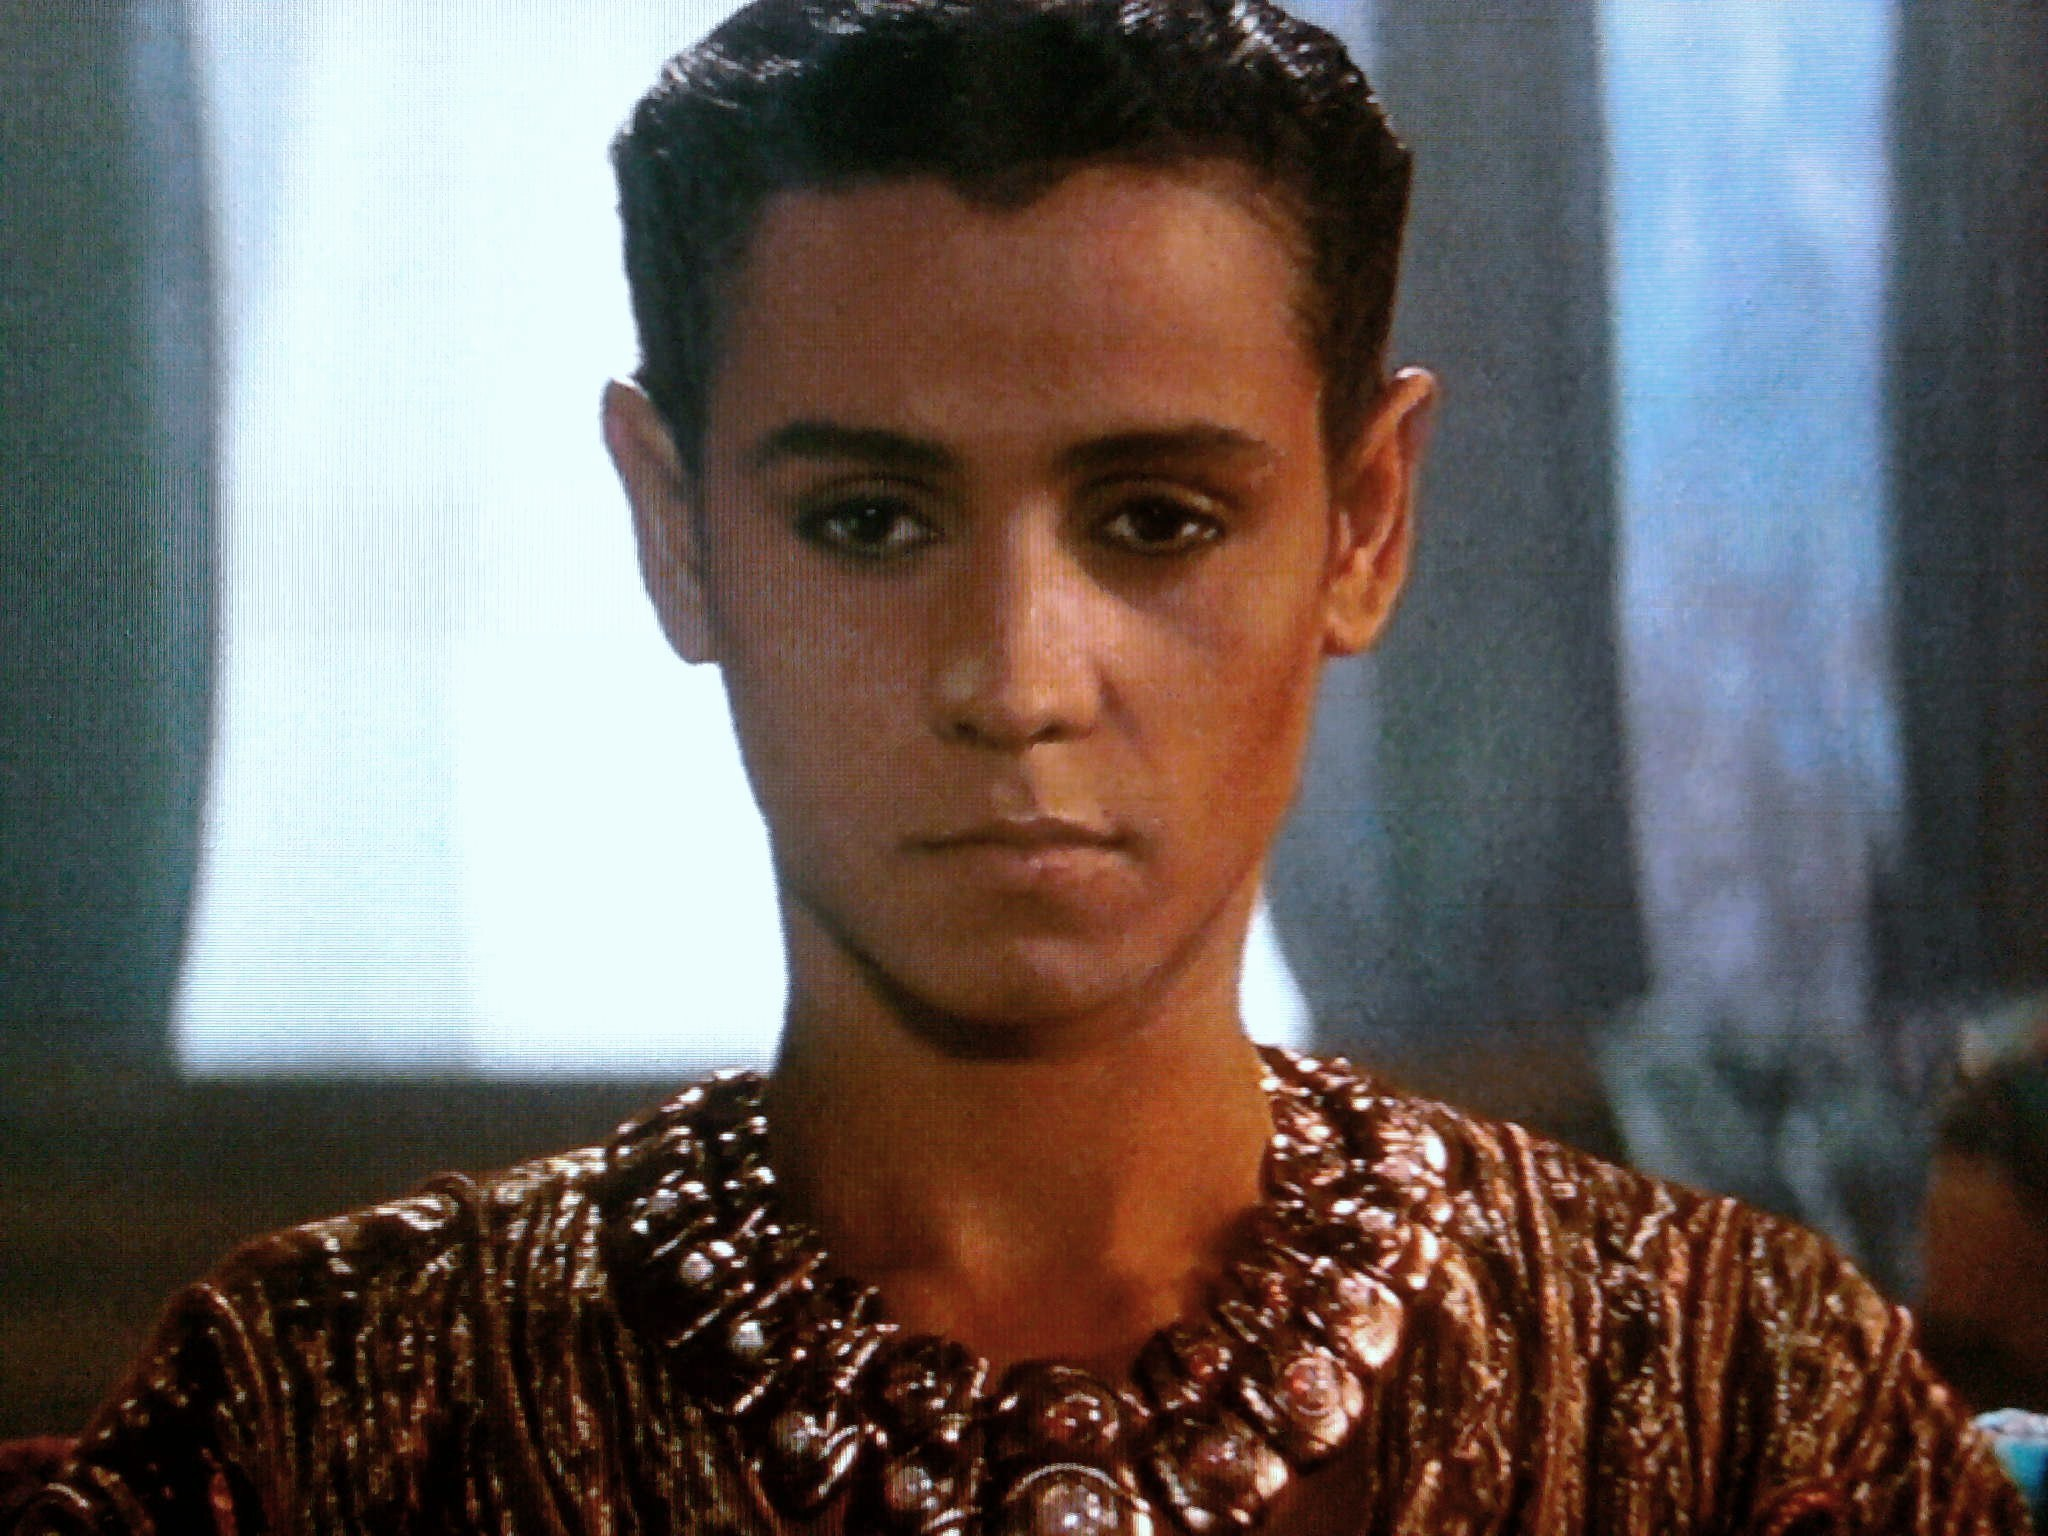 jaye davidson 2017jaye davidson facebook, jaye davidson tumblr, jaye davidson 2017, jaye davidson ra, jaye davidson pictures, jaye davidson images, jaye davidson movies, jaye davidson oscar, jaye davidson height, jaye davidson 2016, jaye davidson instagram, jaye davidson photos, jaye davidson crying game scene, jaye davidson actor, jaye davidson today, jaye davidson, jaye davidson now, jaye davidson 2015, jaye davidson 2014, jaye davidson stargate